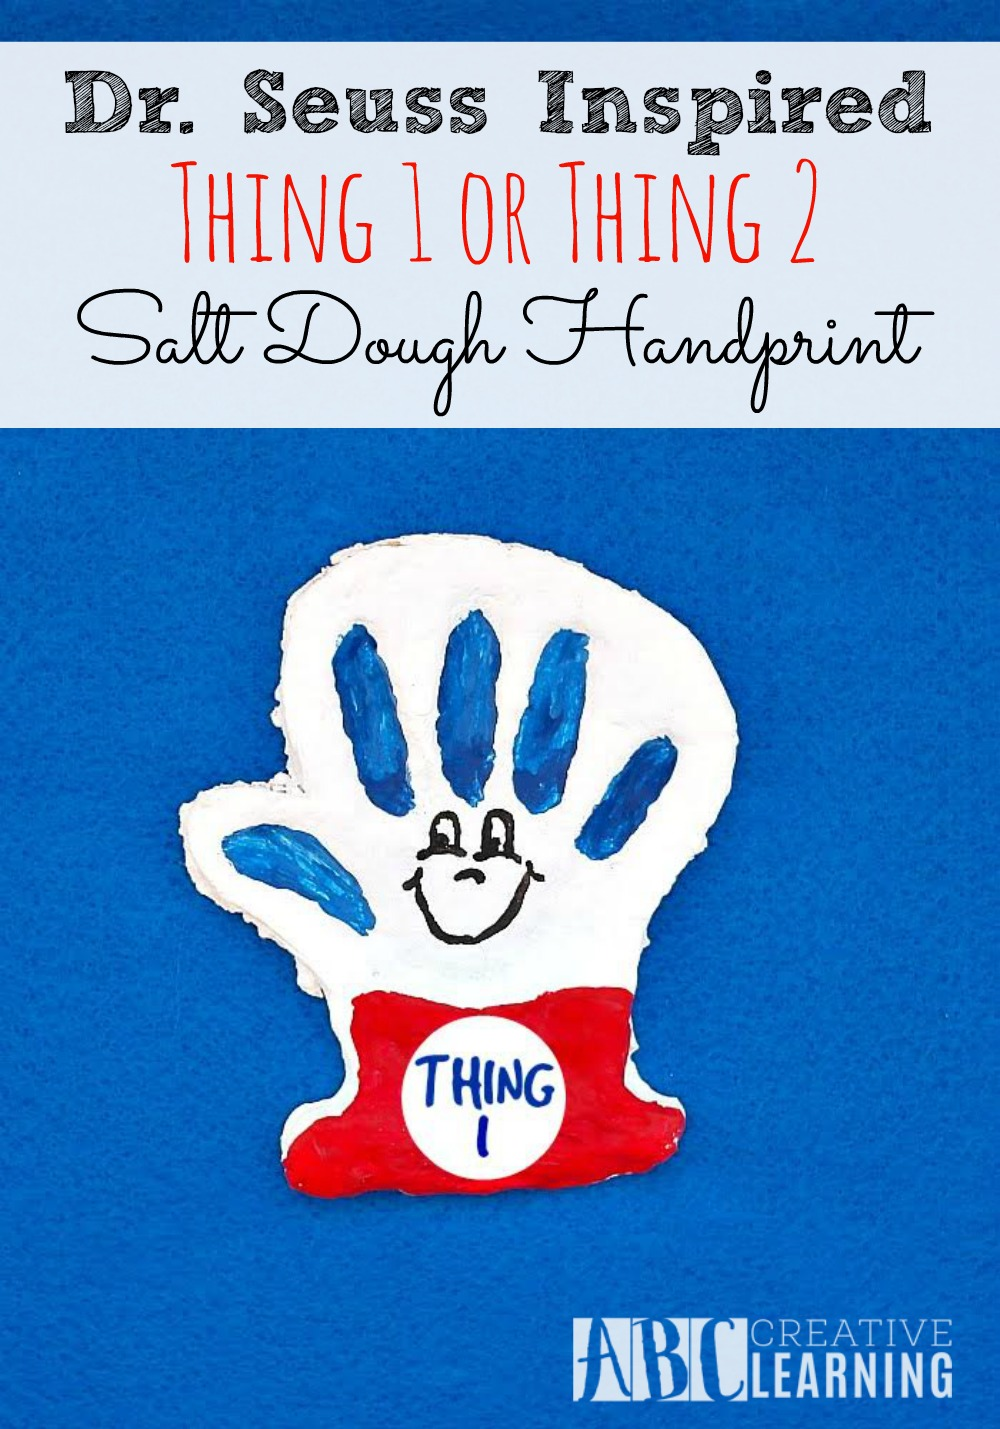 Dr. Seuss Inspired Thing 1 and Thing 2 Salt Dough Handprint